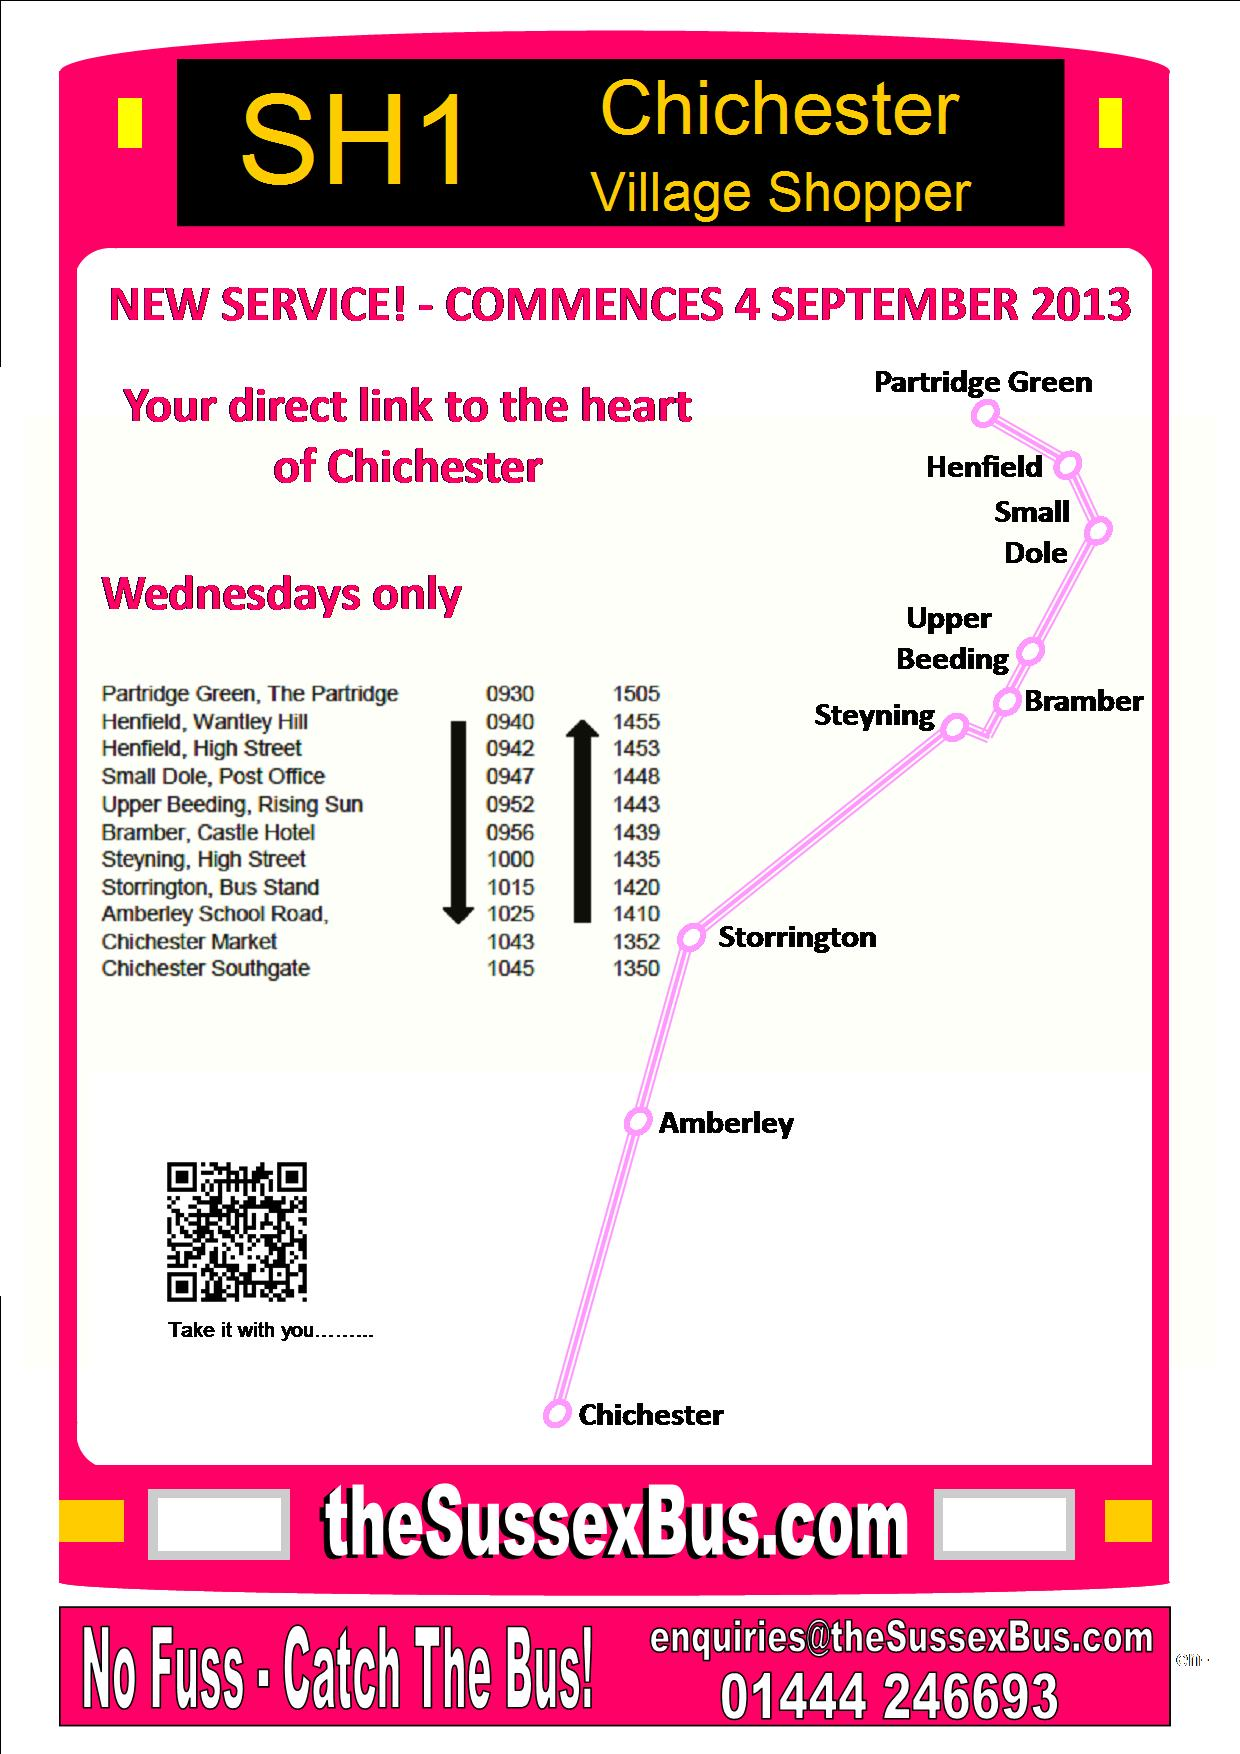 SH1 Timetable Small Dole Steyning Storrington Amberley Chichester